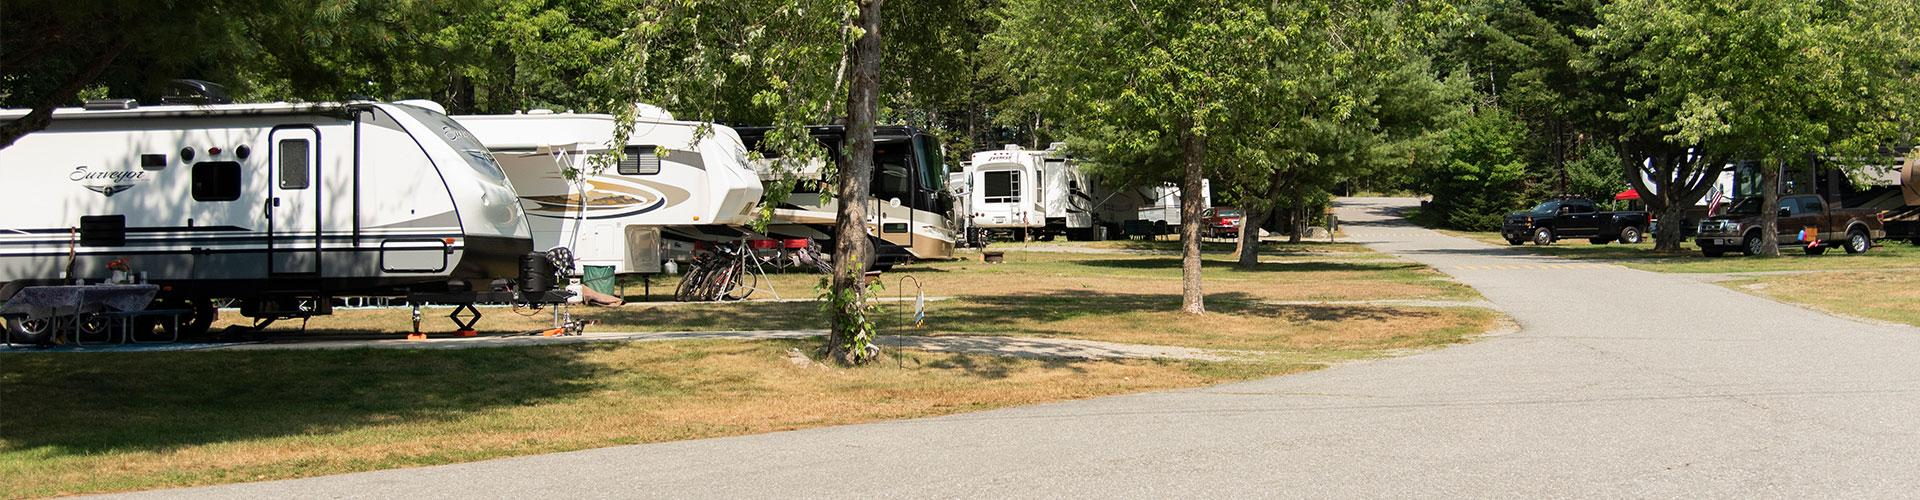 campers at smuggler's den campground